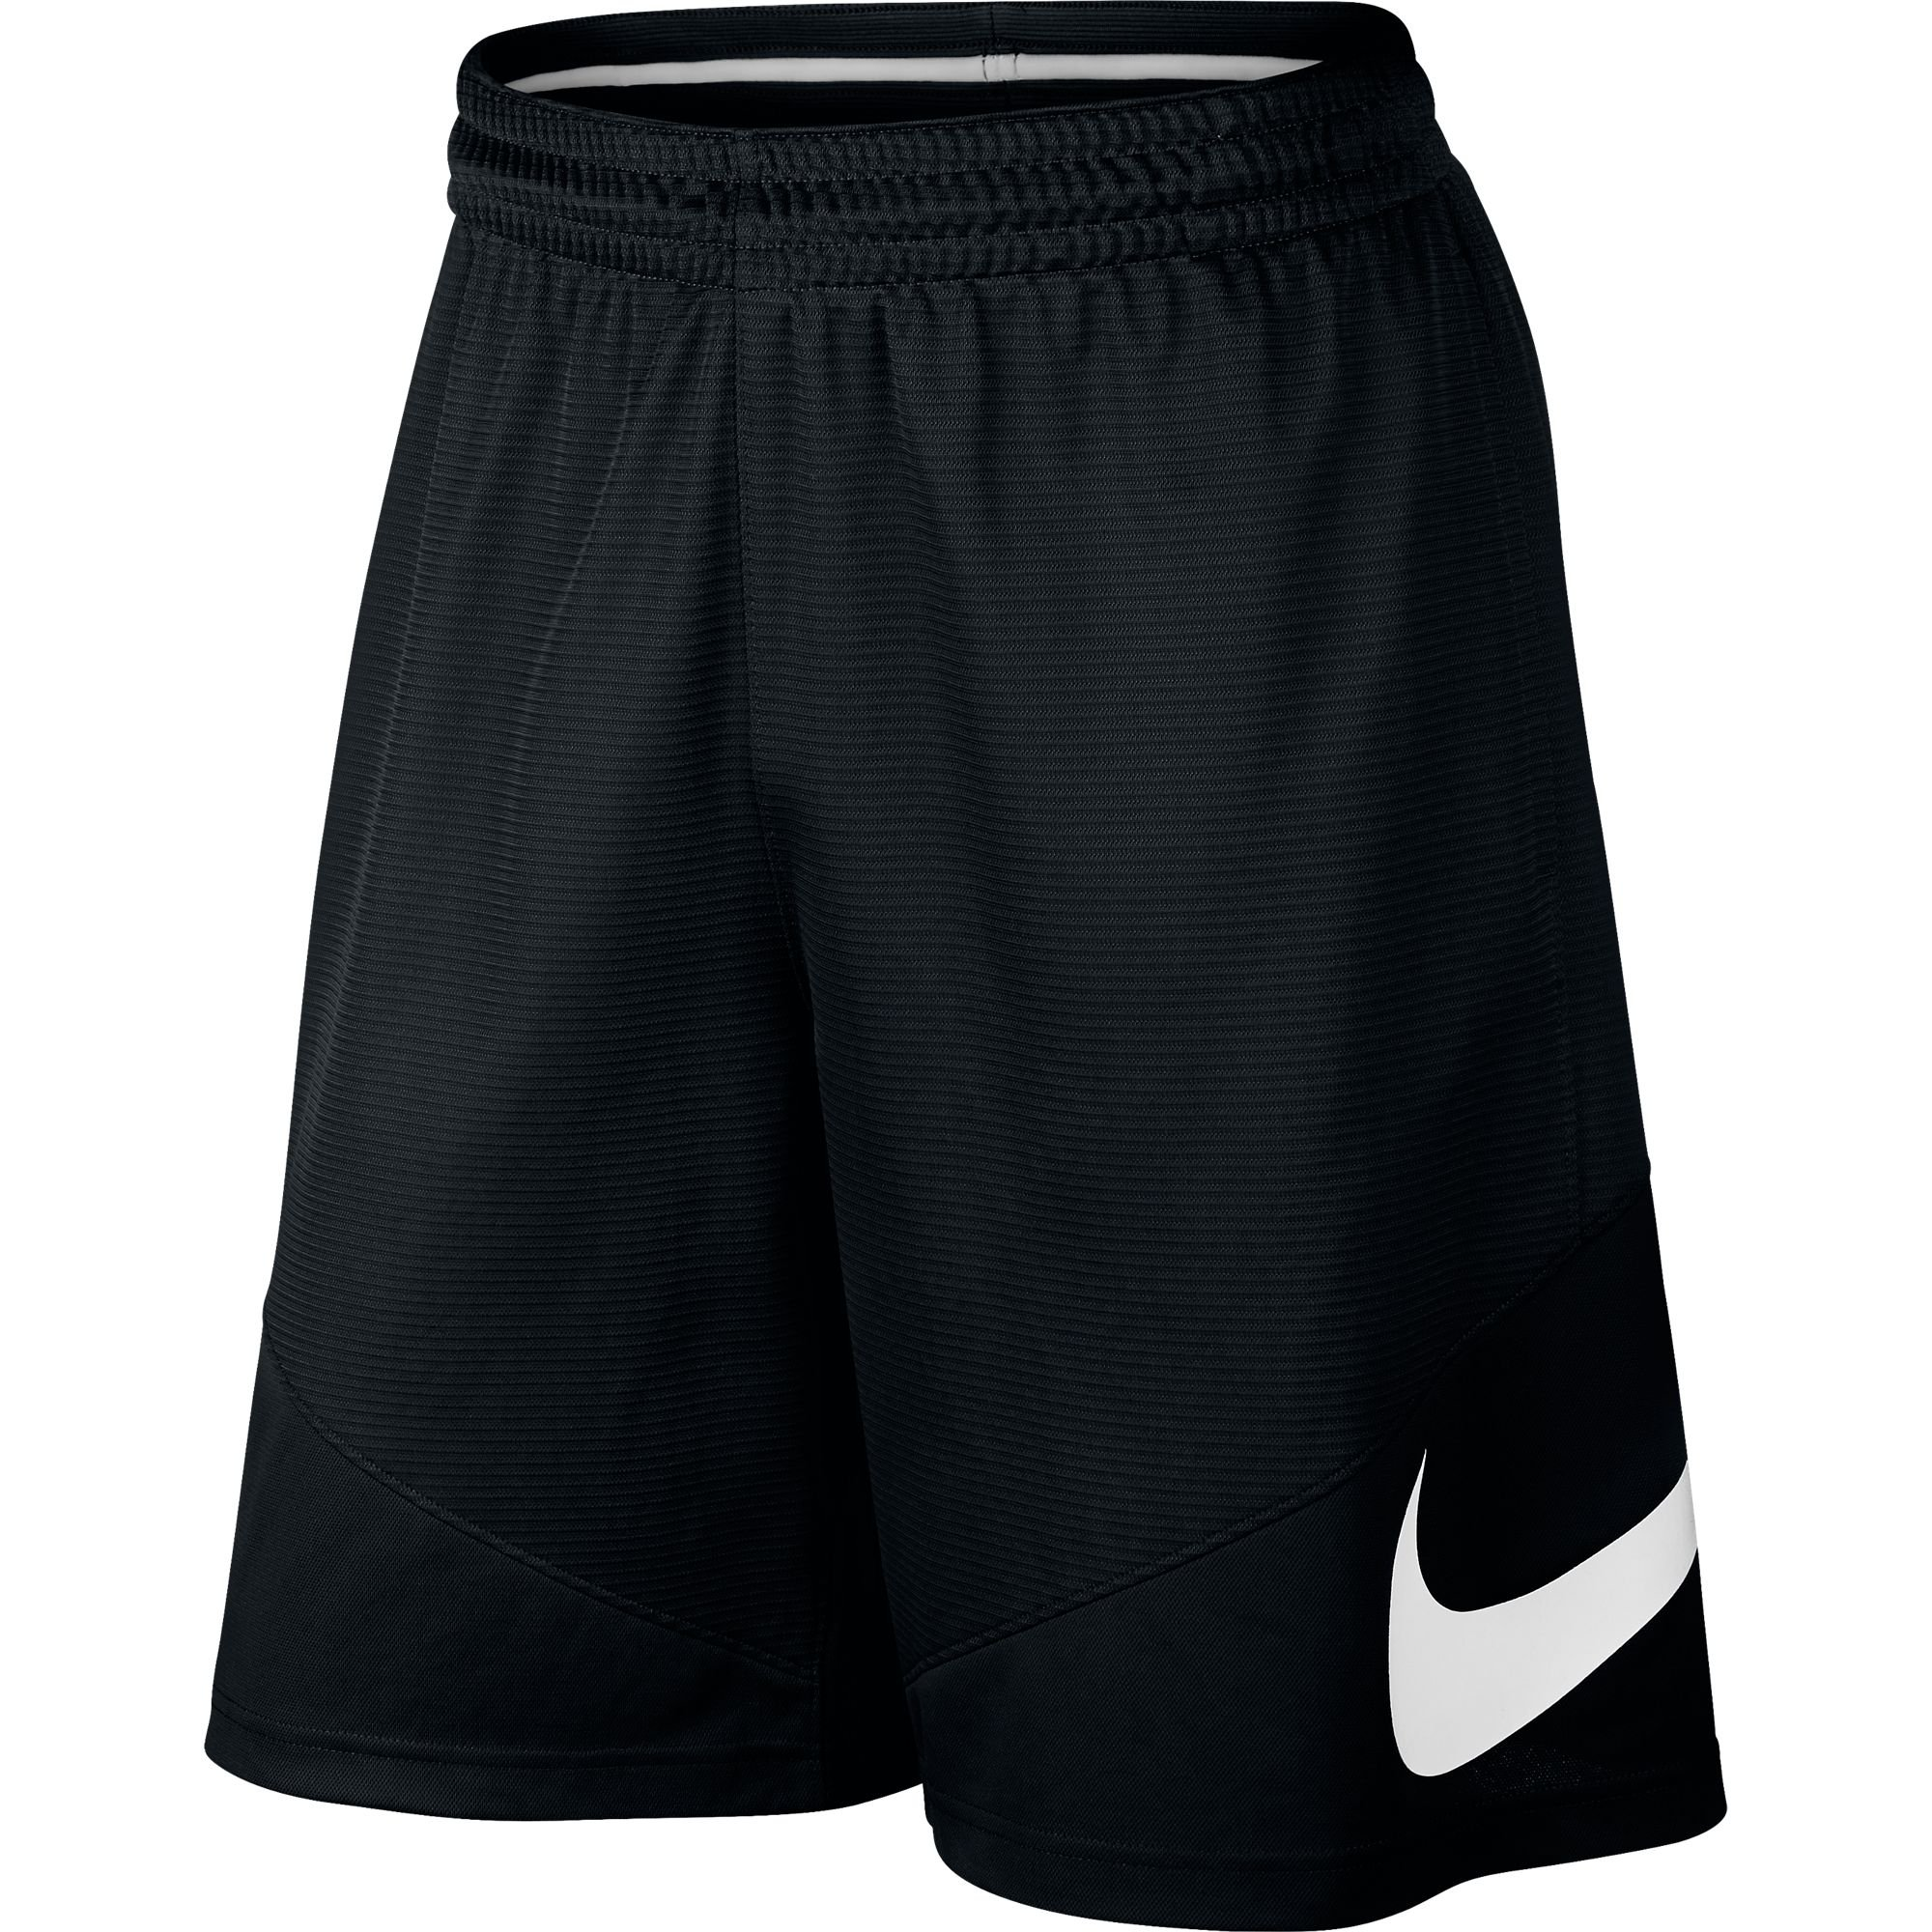 NIKE Men's Basketball Shorts, Black/Black/Black/White, Large